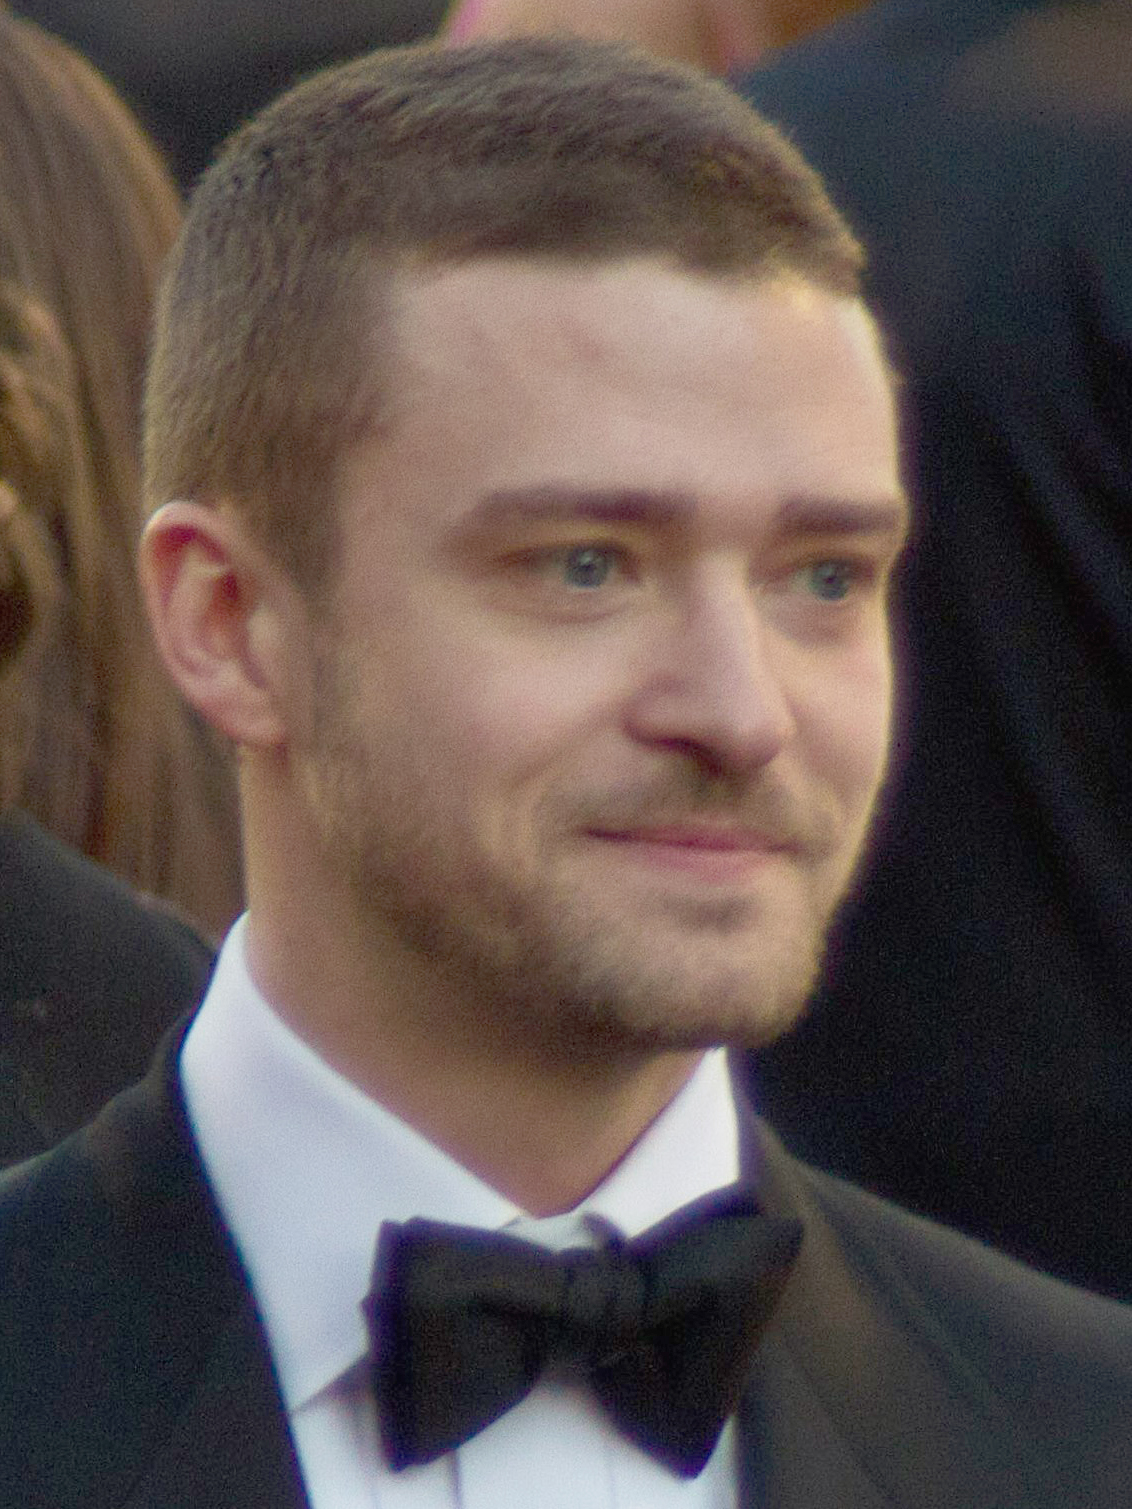 http://upload.wikimedia.org/wikipedia/commons/6/64/Justin_Timberlake_2011_AA_-_Cropped.jpg